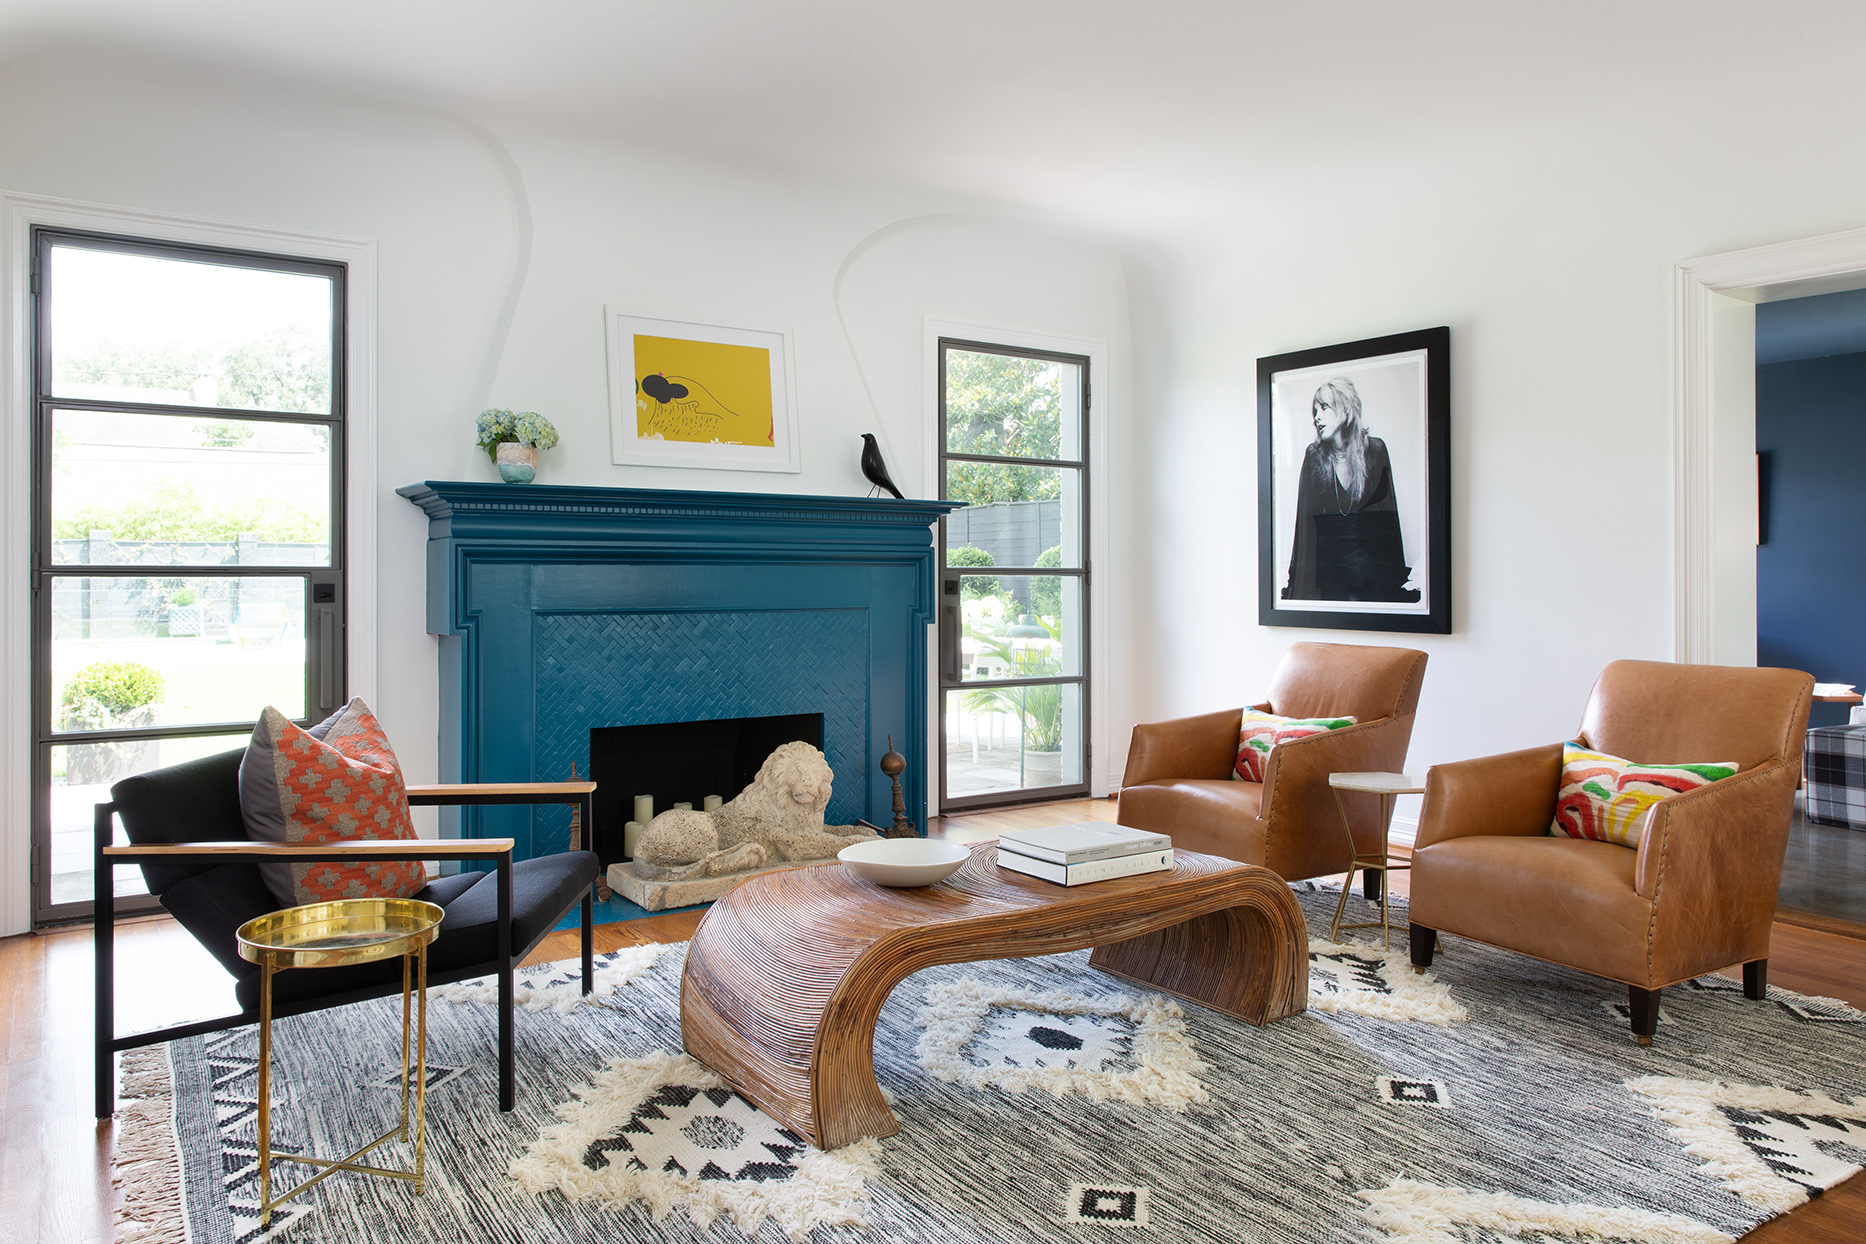 Best Living Room Decorating Ideas for Every Homeowner   Martha Stewart